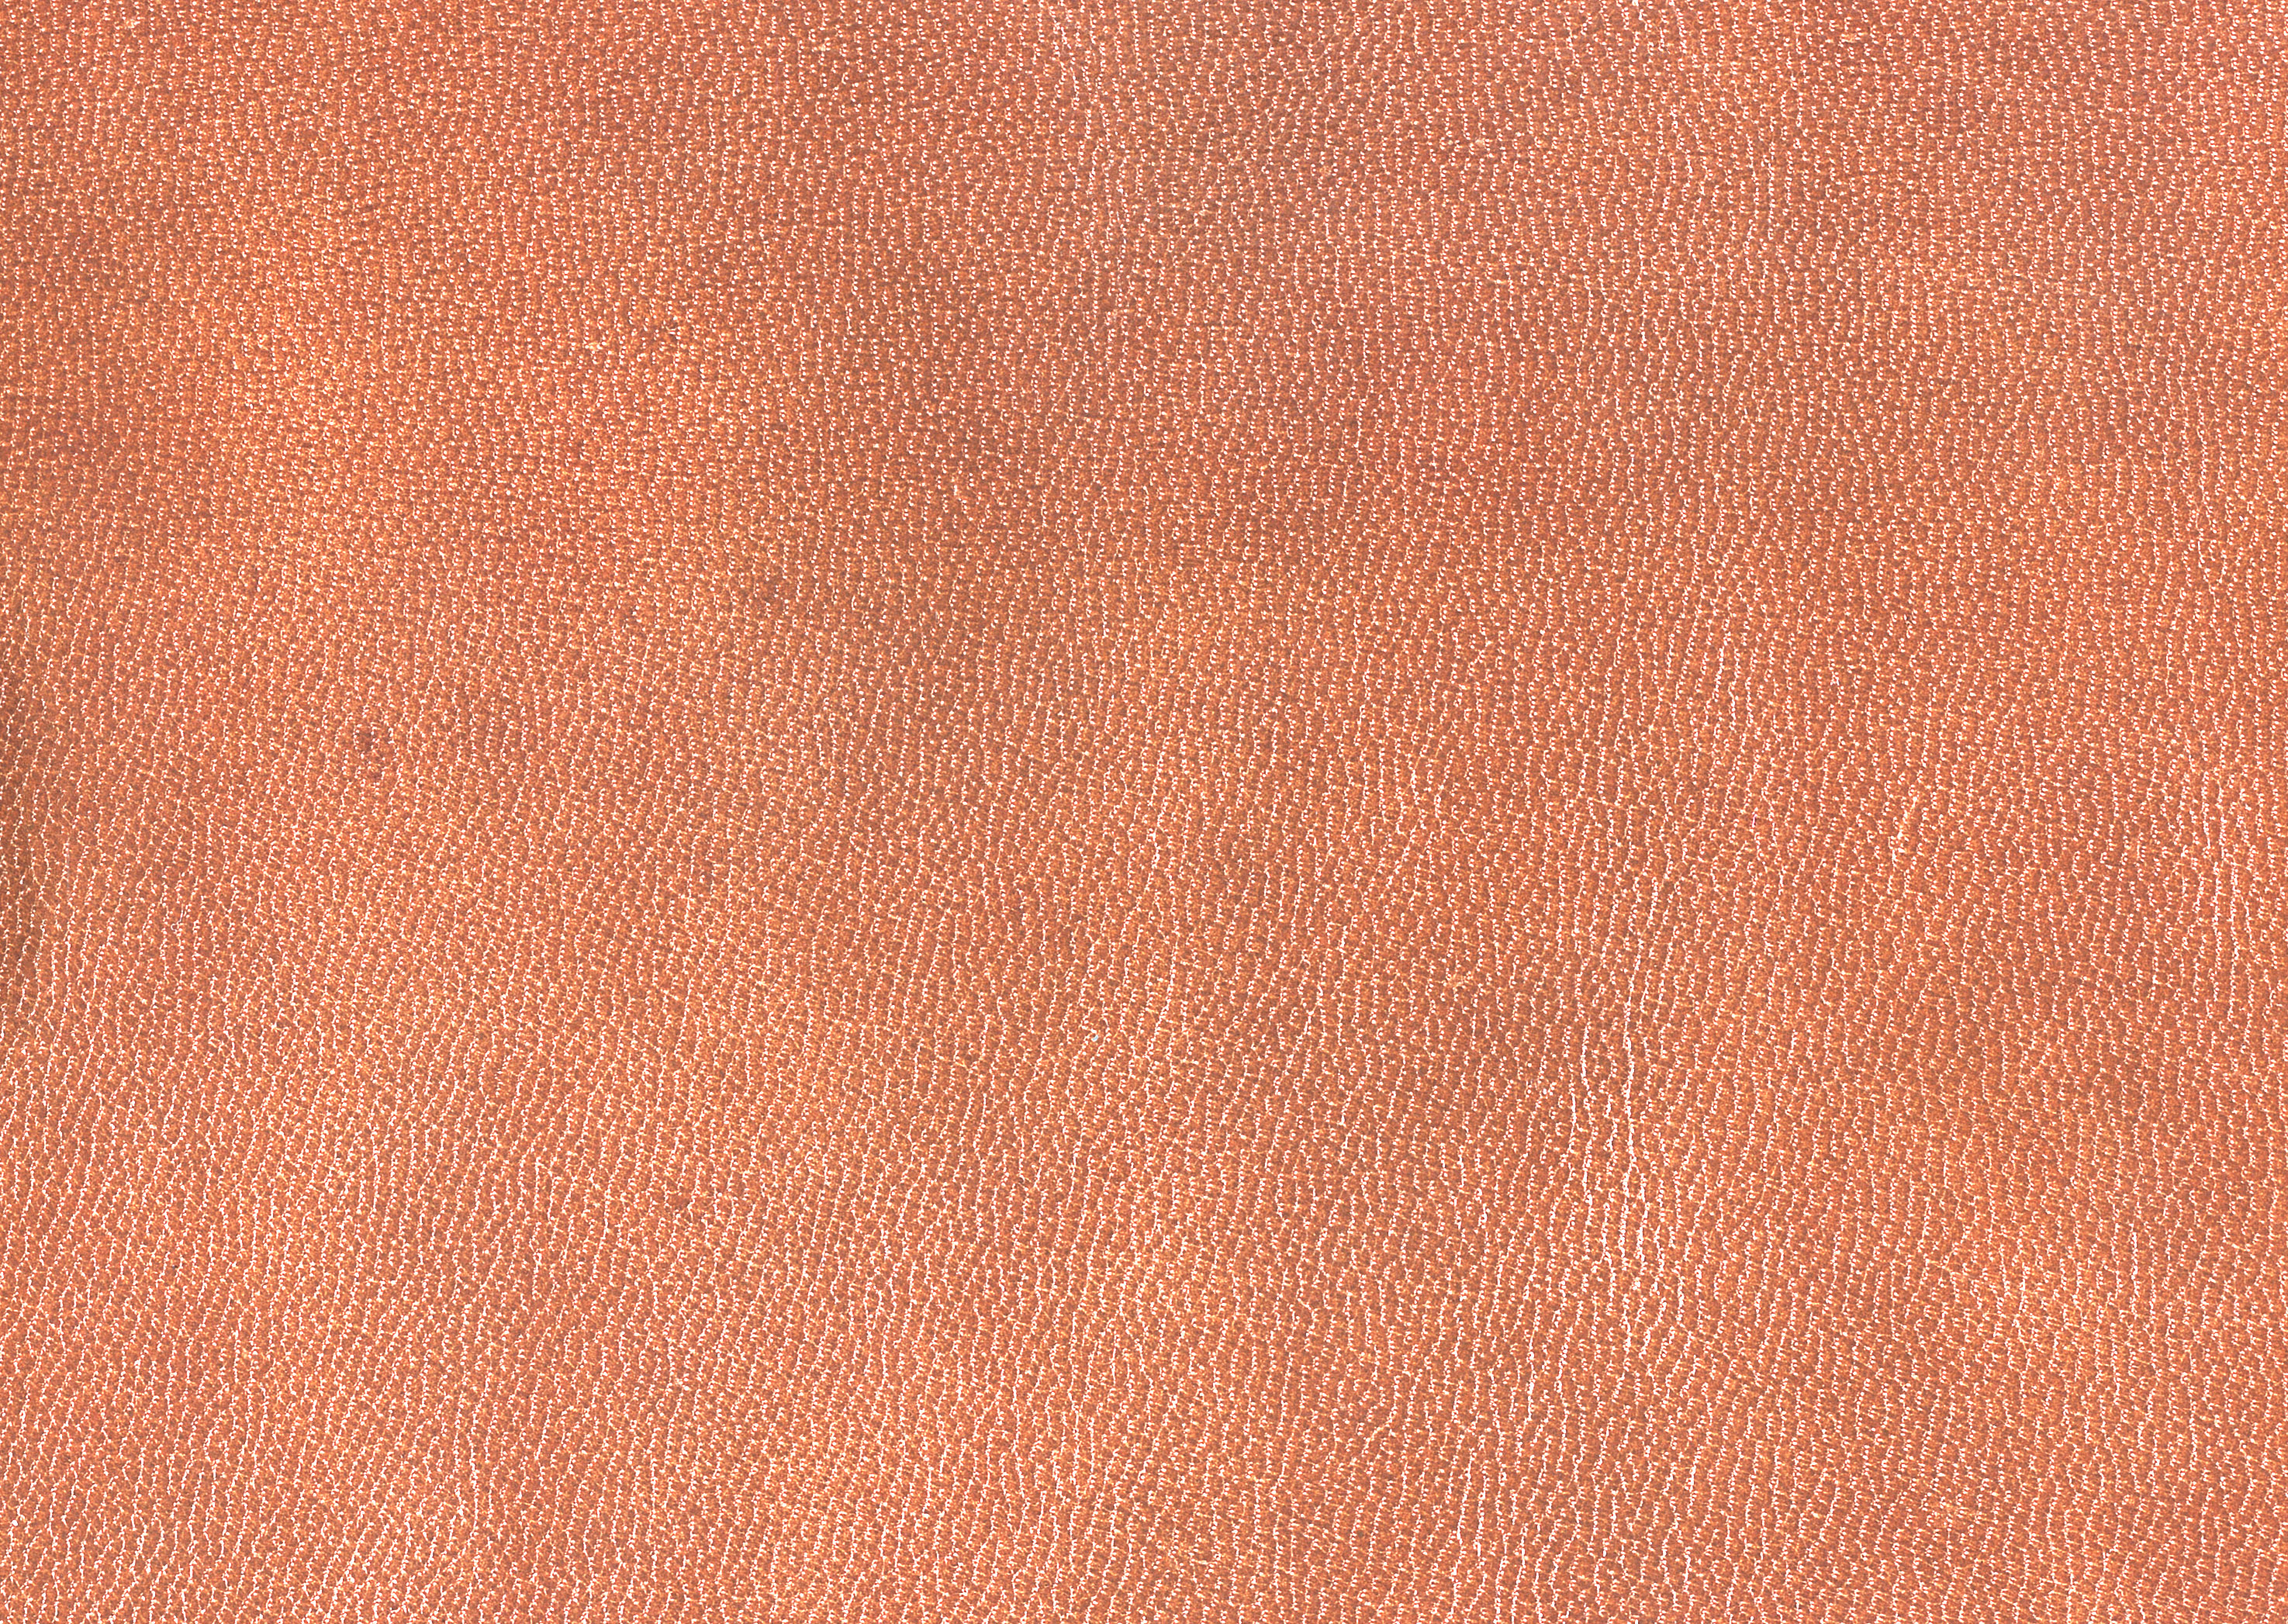 Beige leather texture background image free download